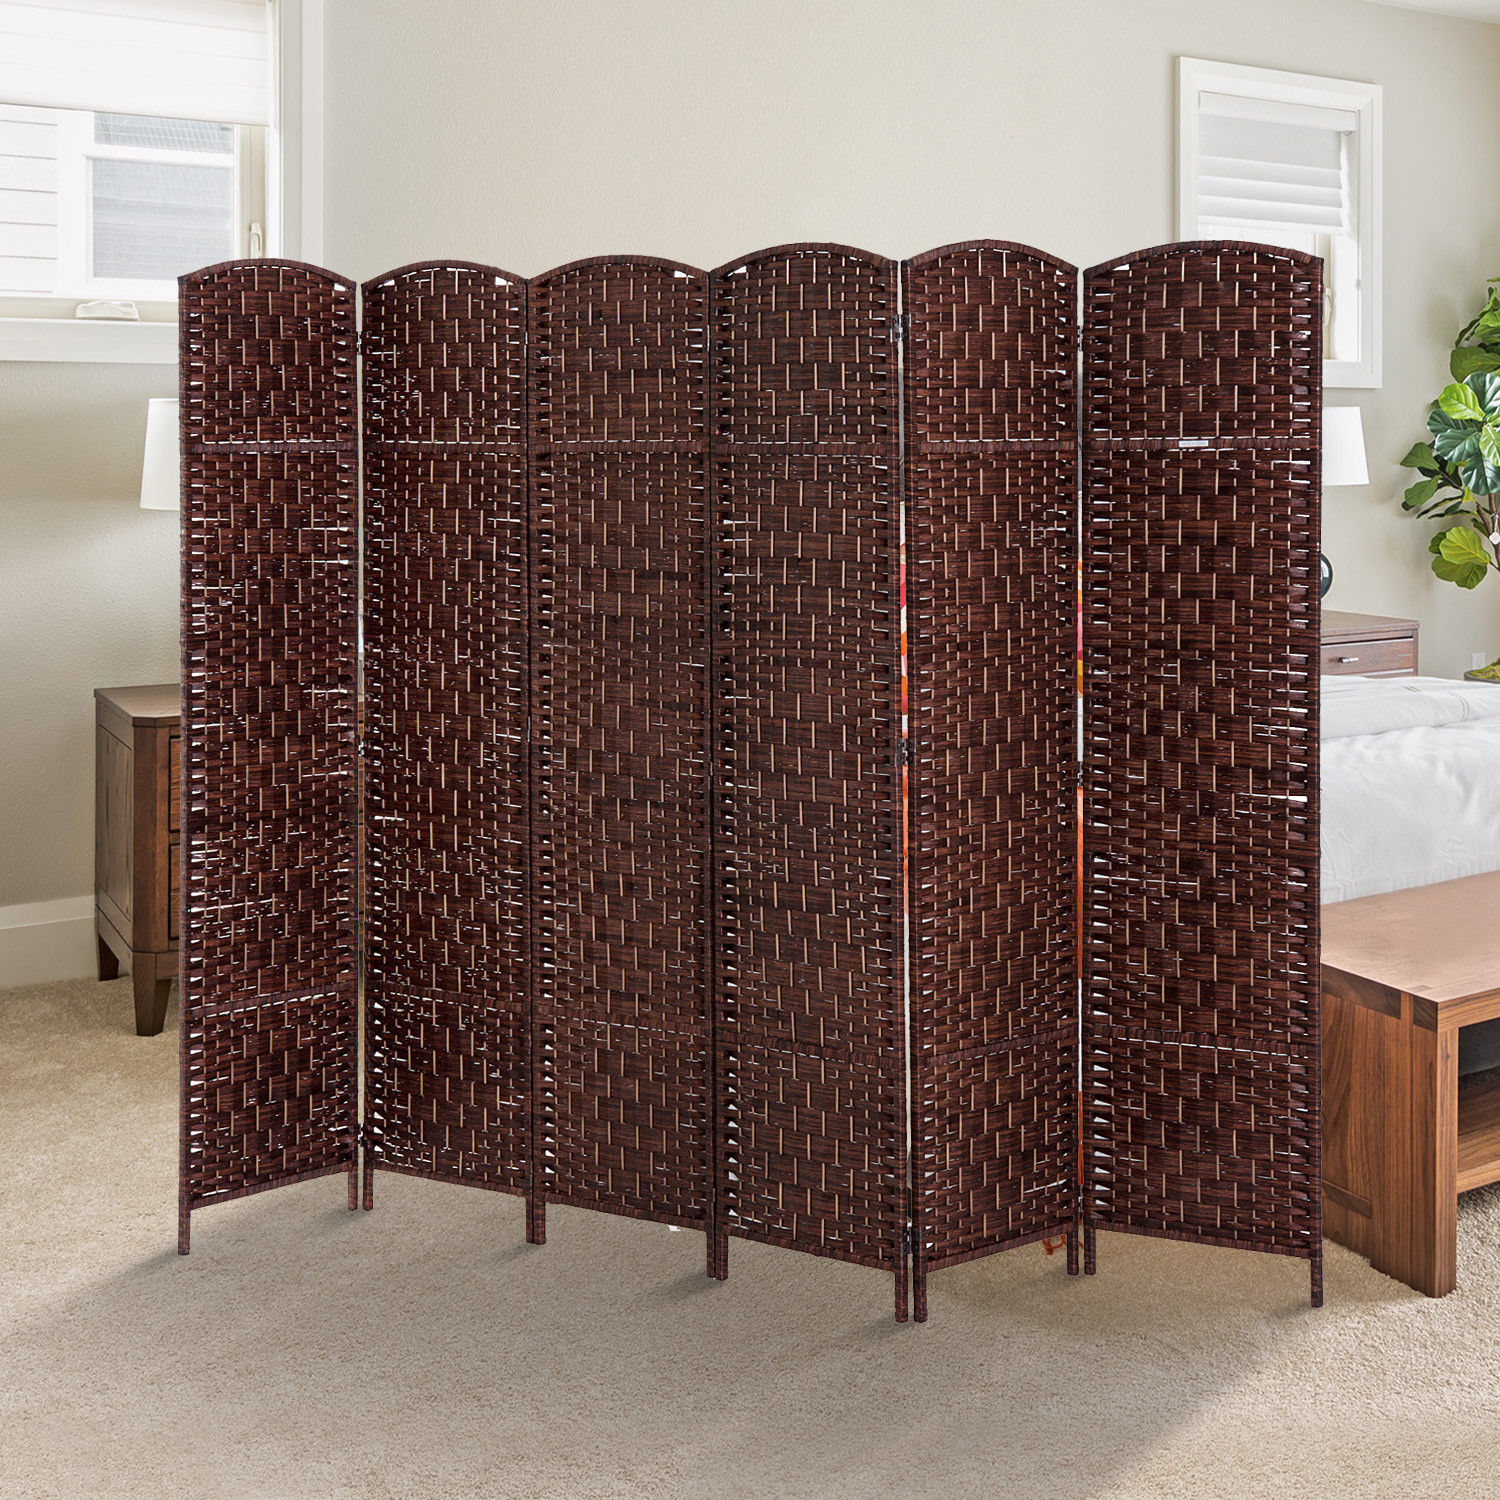 6 Panel Folding Room Divider Resin Wicker Privacy Screen Home ...